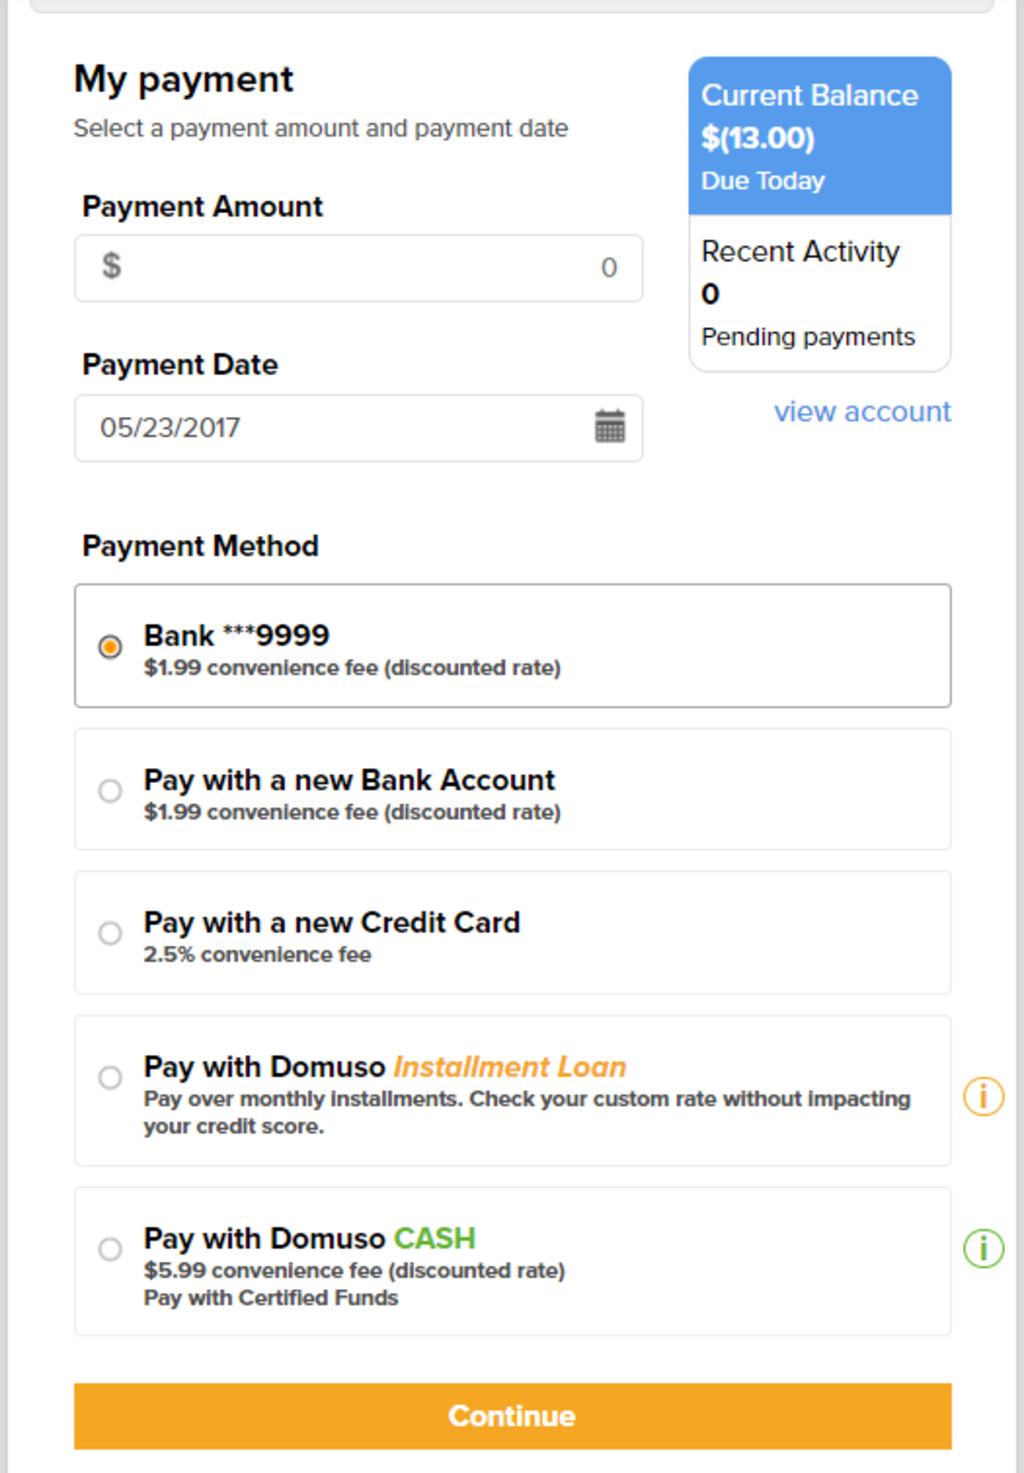 From Domuso.com - renters can pay online, with the option of a loan to cover rent in emergencies.